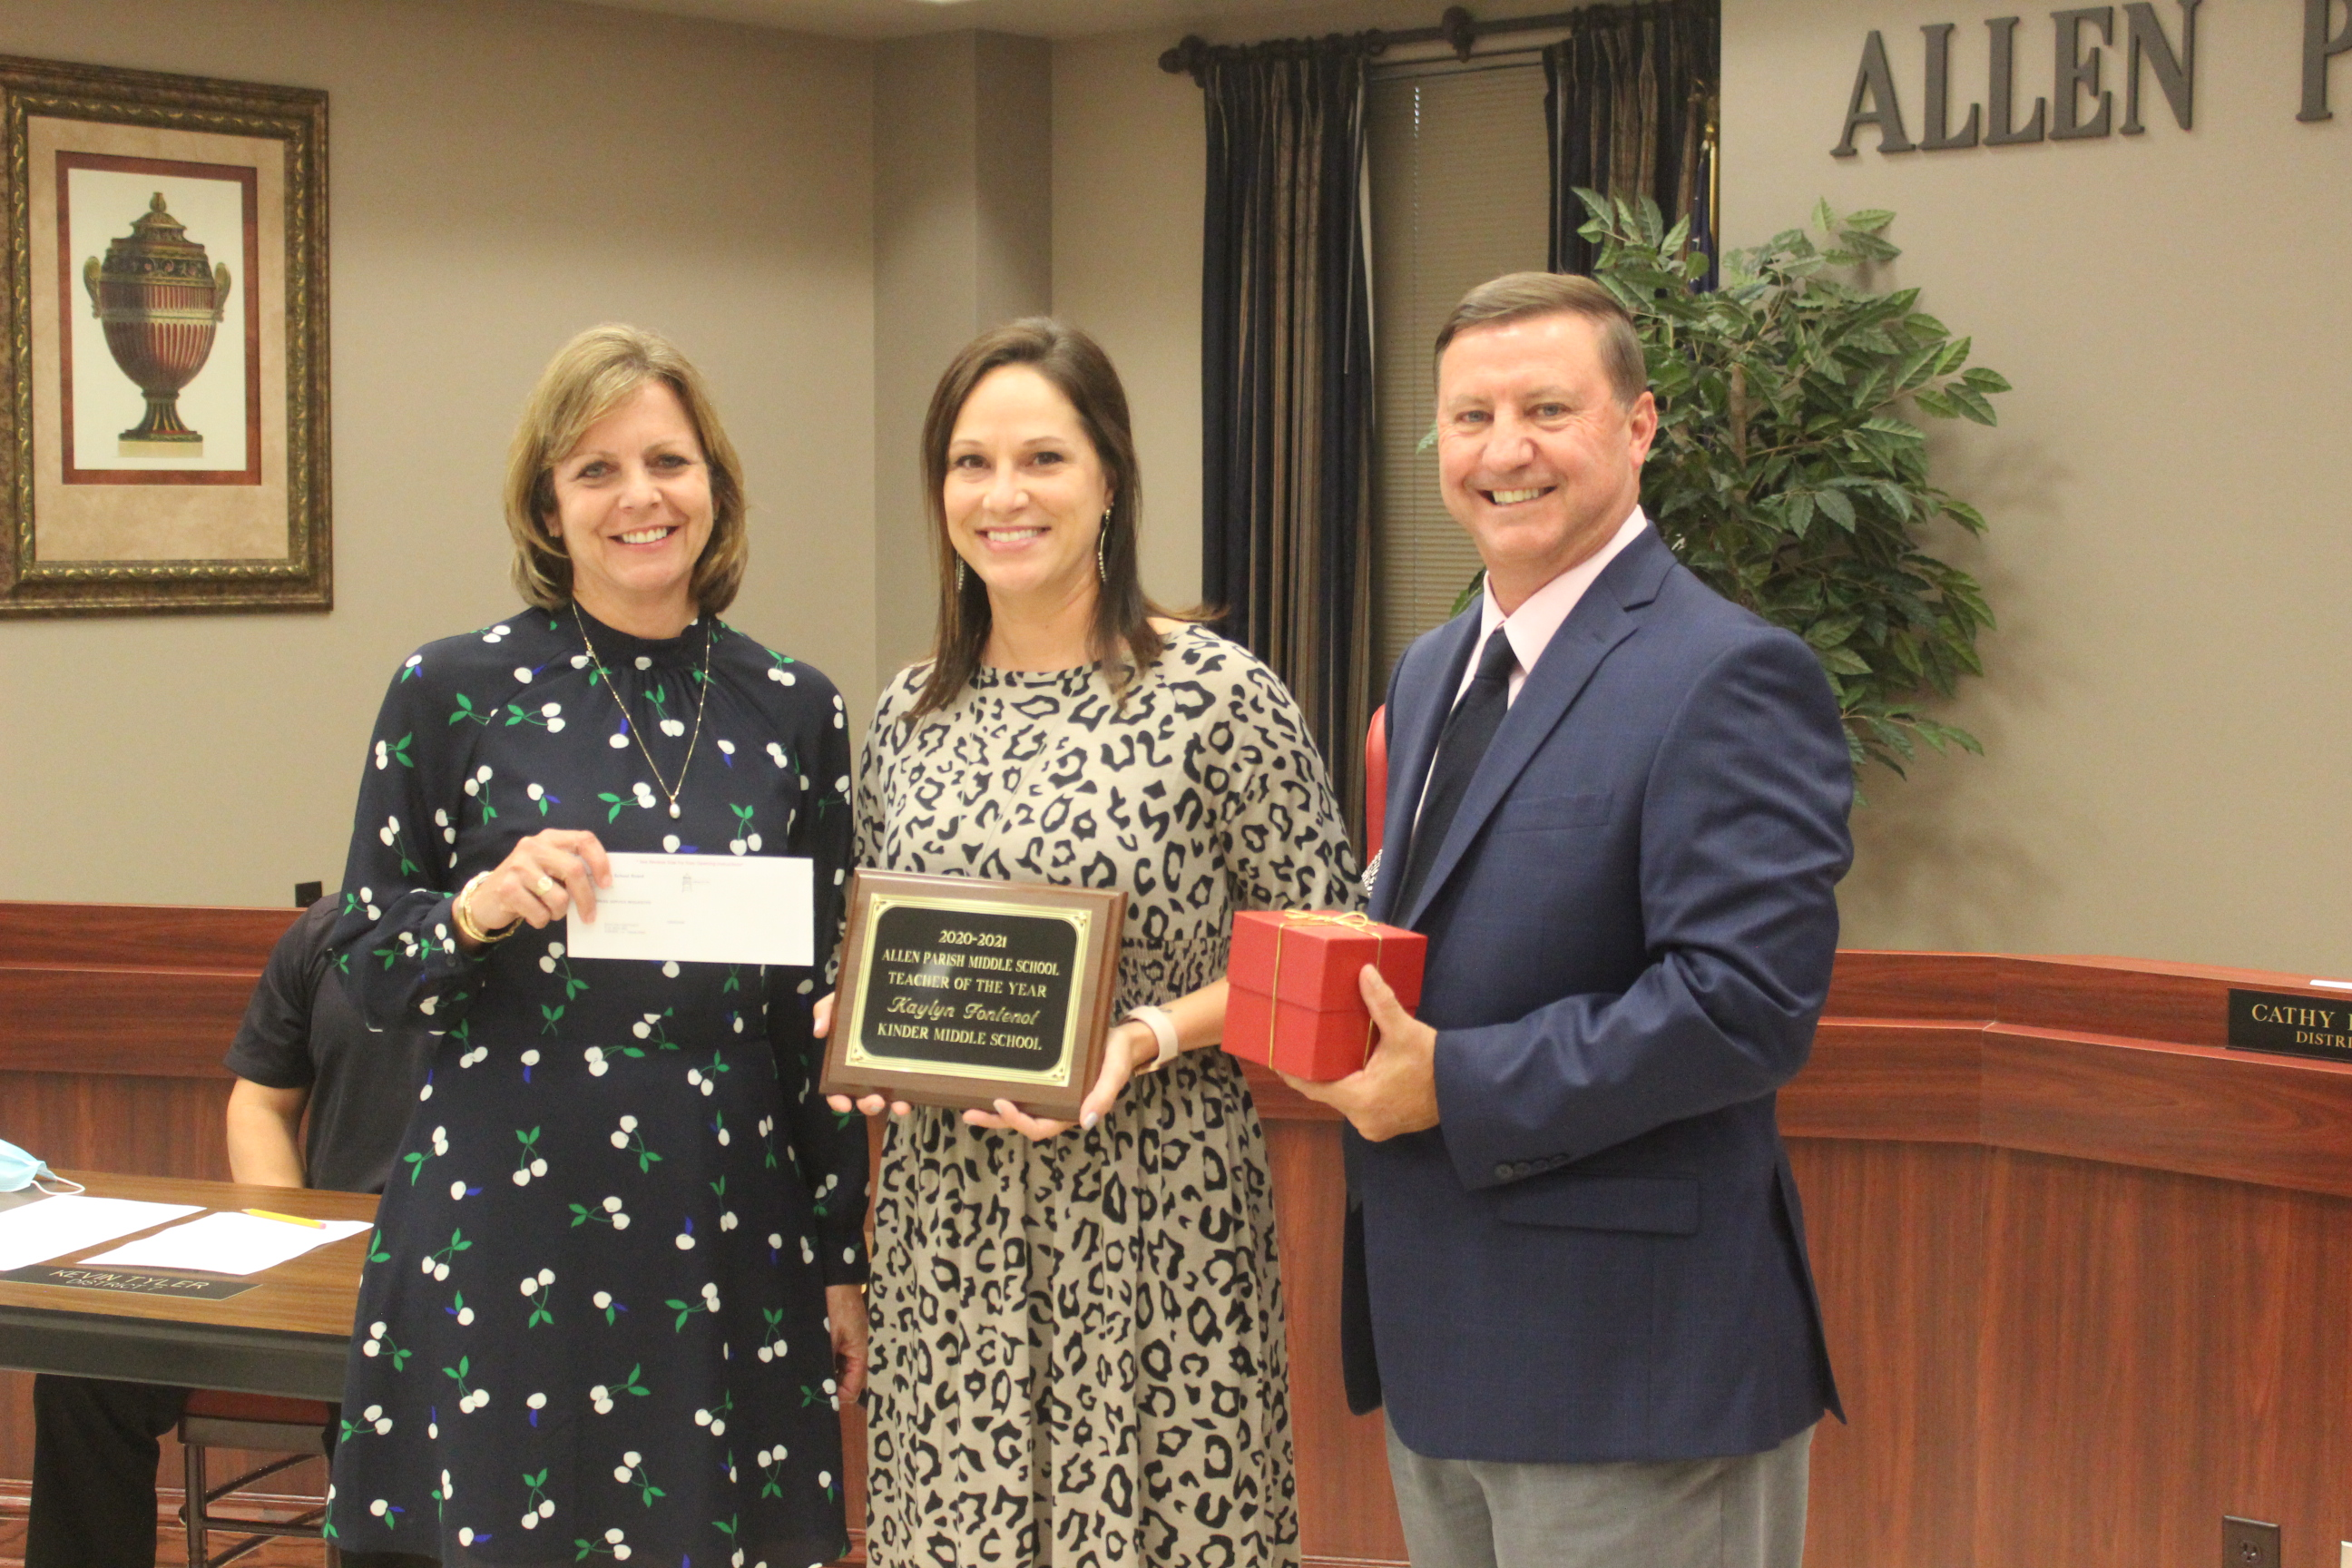 20-21 Middle School Teacher of the Year Kaylyn Fontenot, c, with KMS Principal Marcia Miller, l, and Superintendent Kent Reed, r